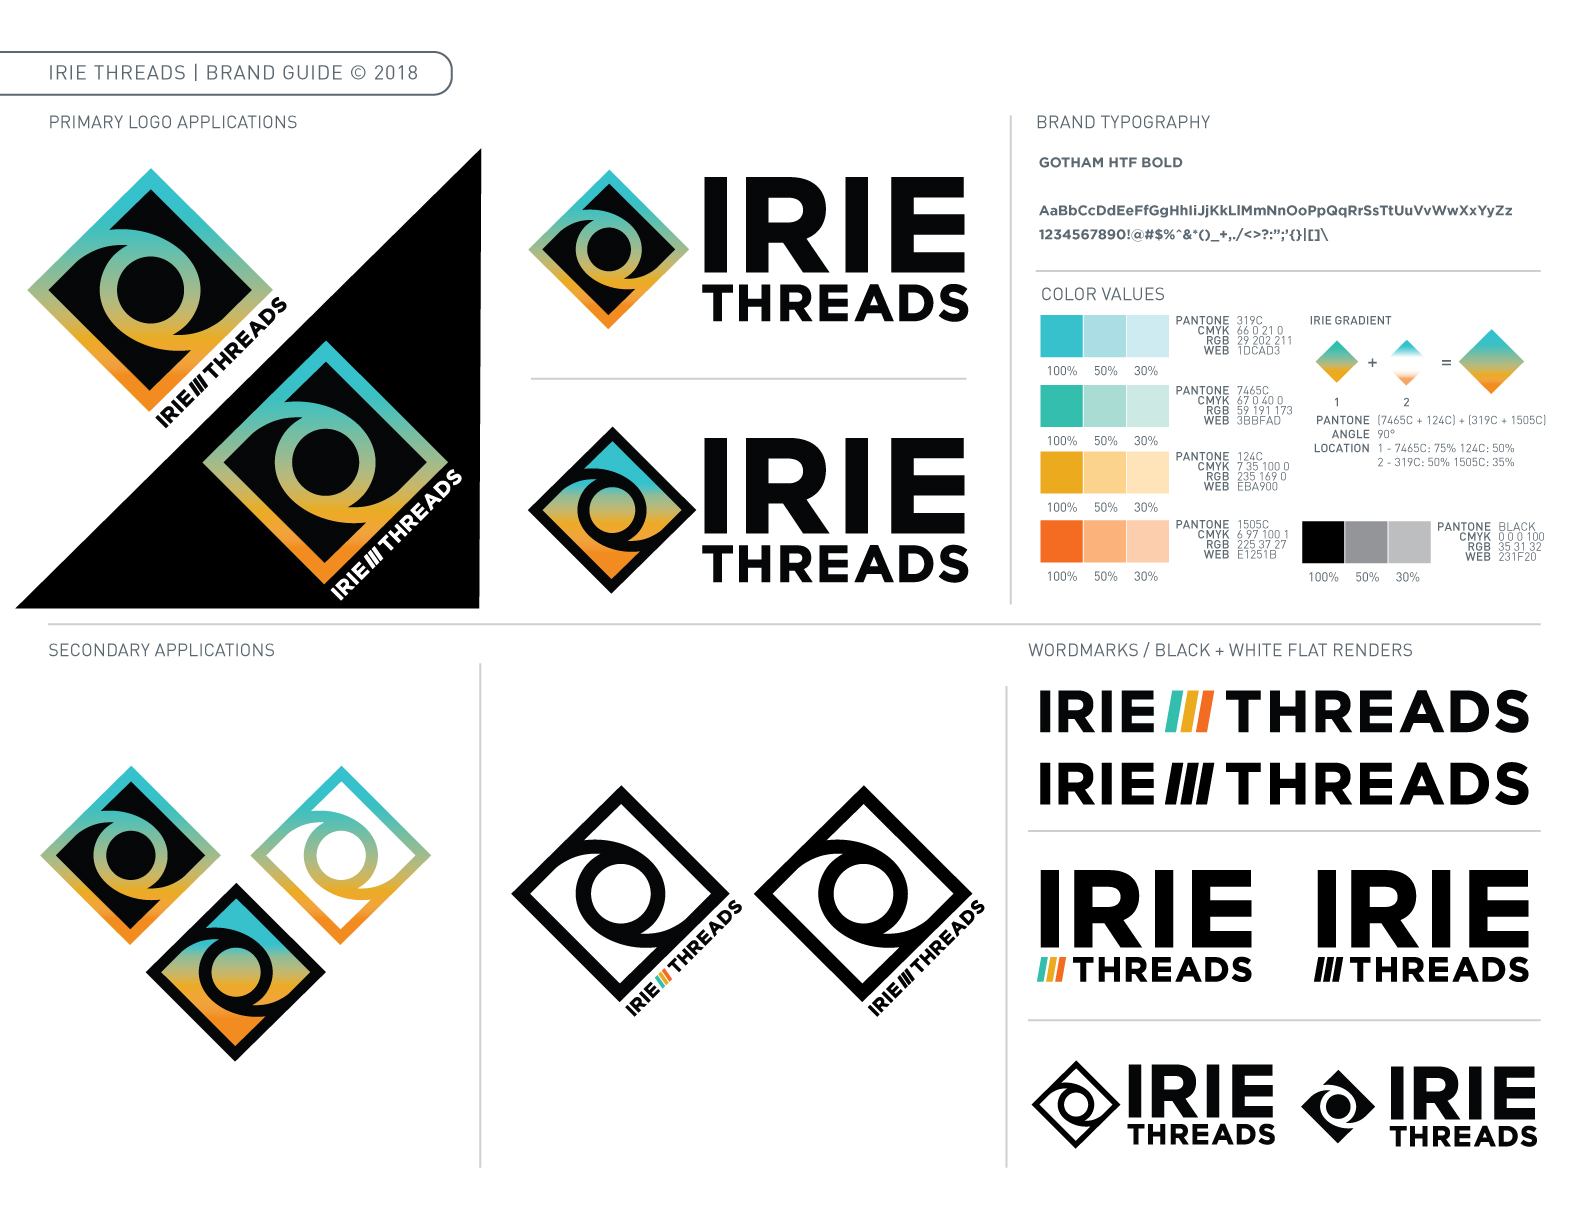 Irie Threads Brand Guide